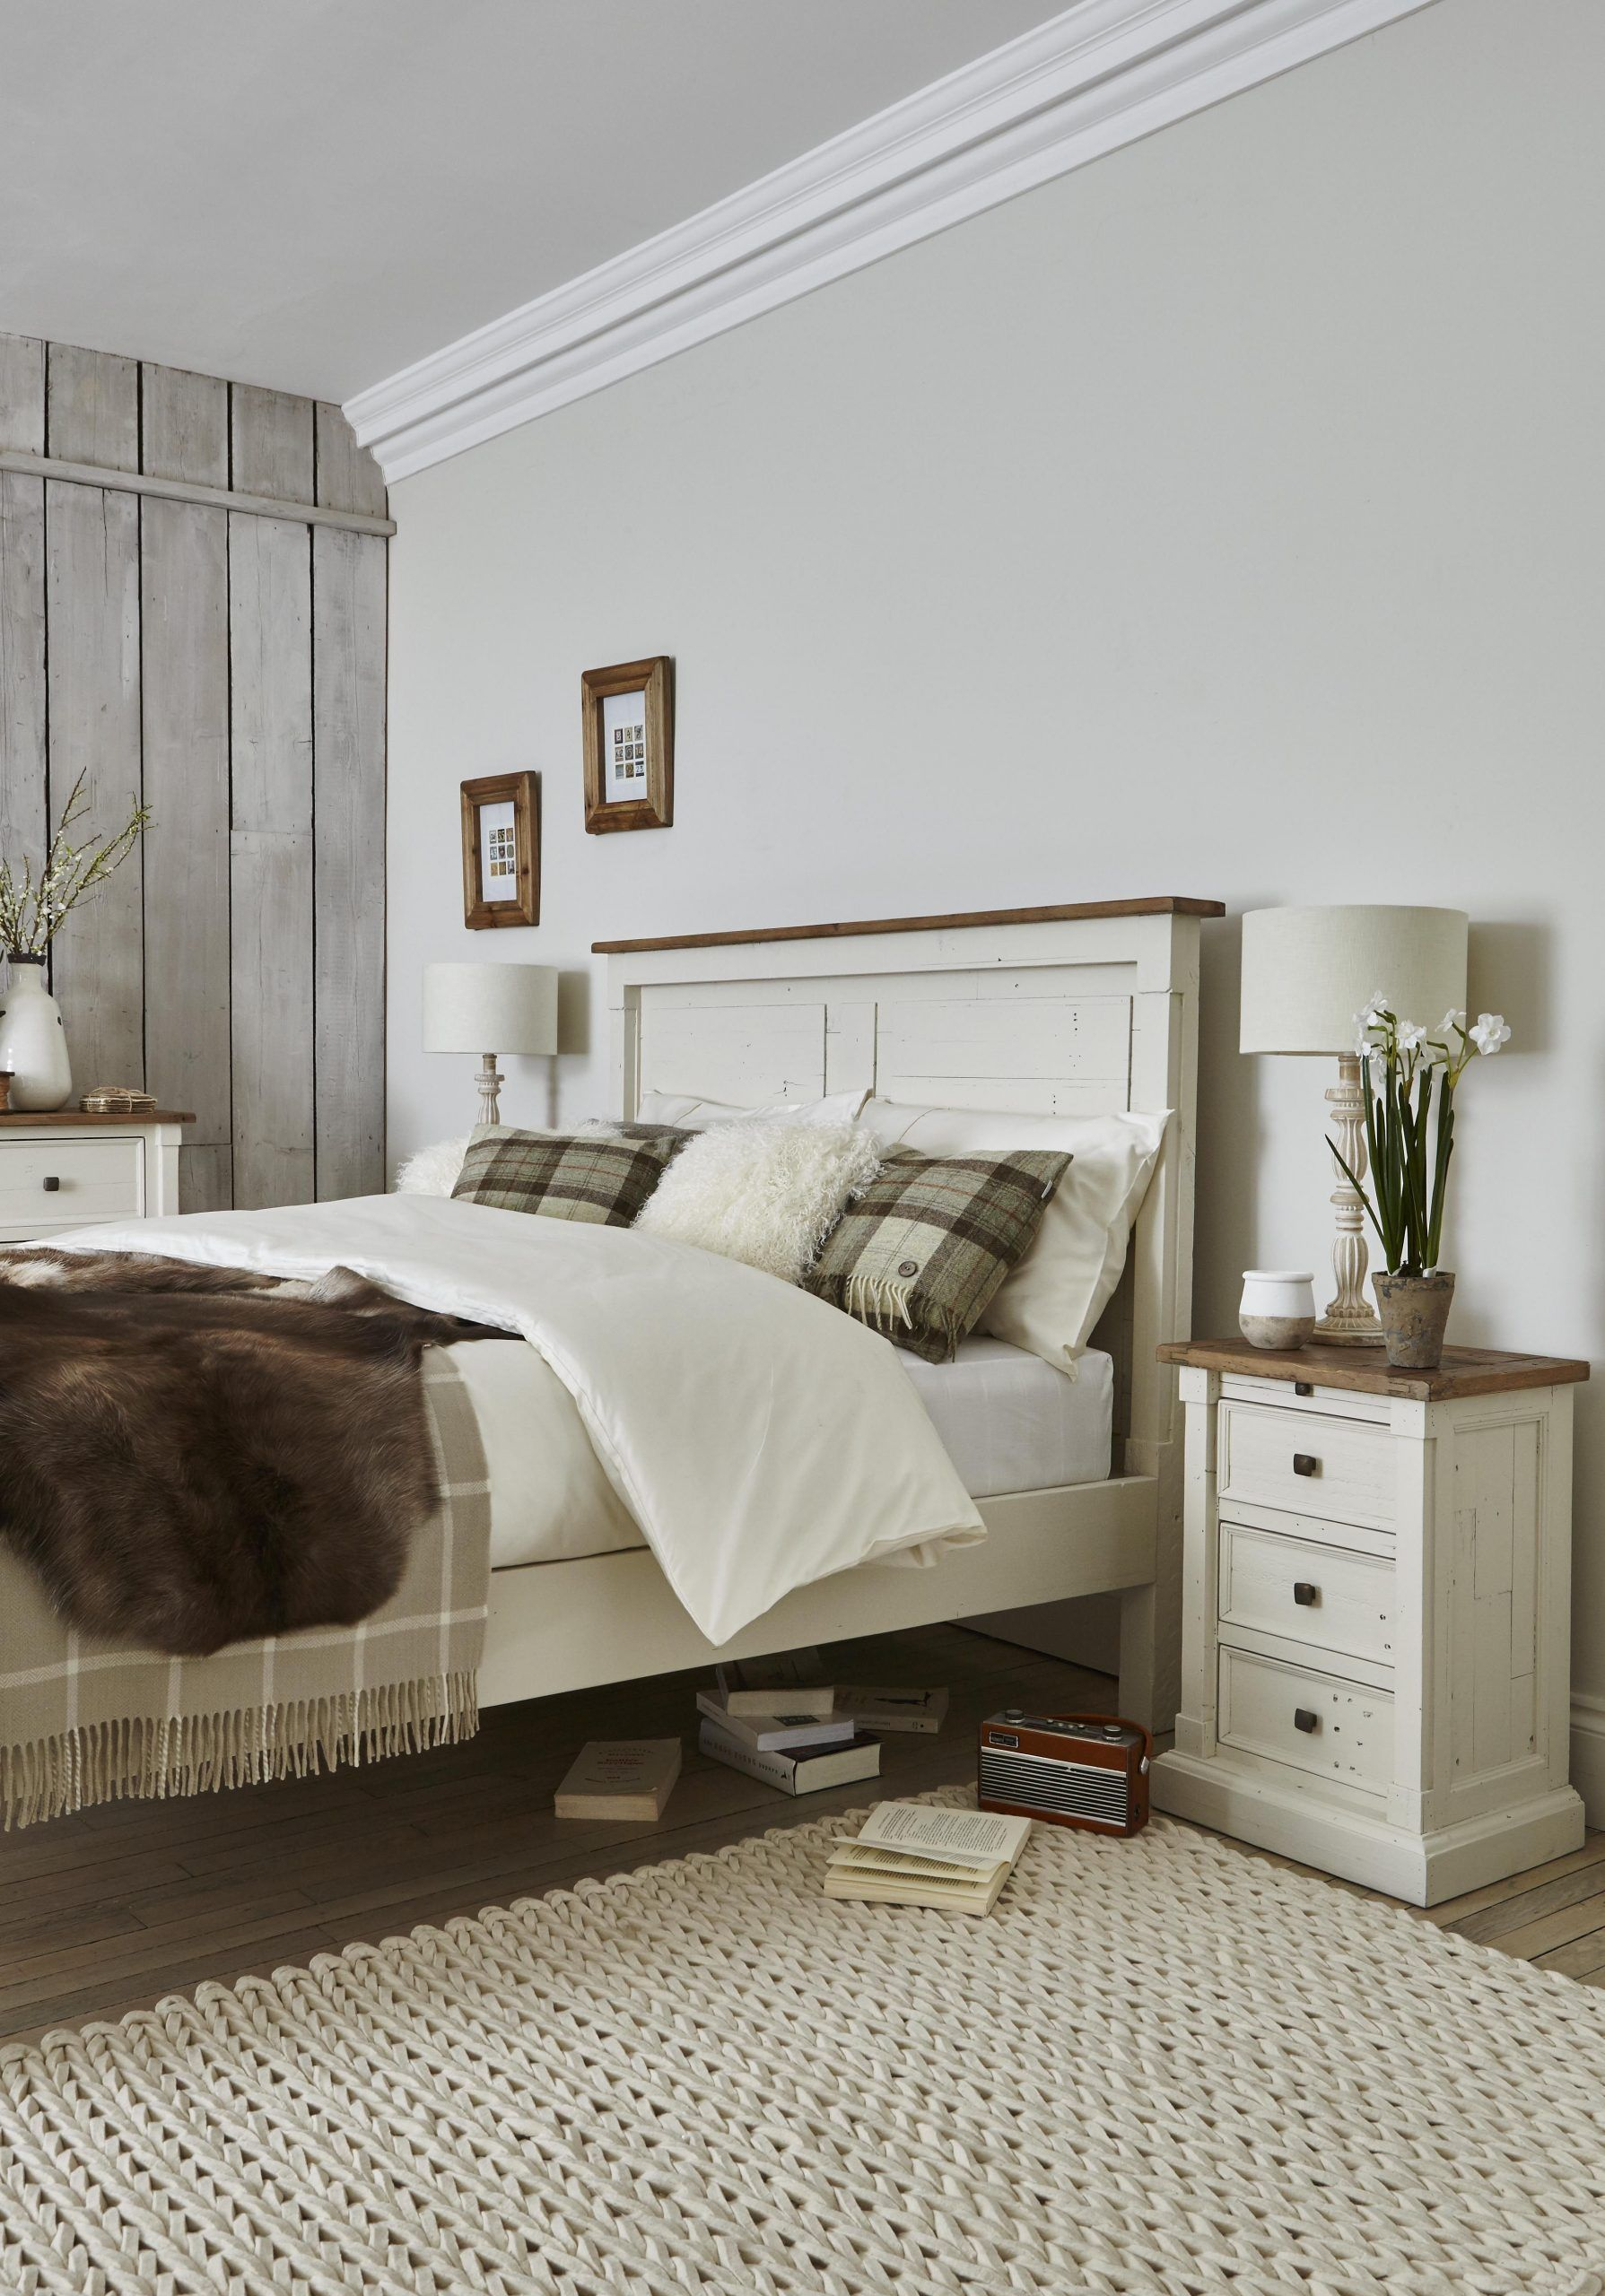 White Wood Bedroom Furniture Create A Calm And Relaxing Bedroom Interior With Ou White Wood Bedroom Furniture Cream Bedroom Furniture Country Bedroom Furniture